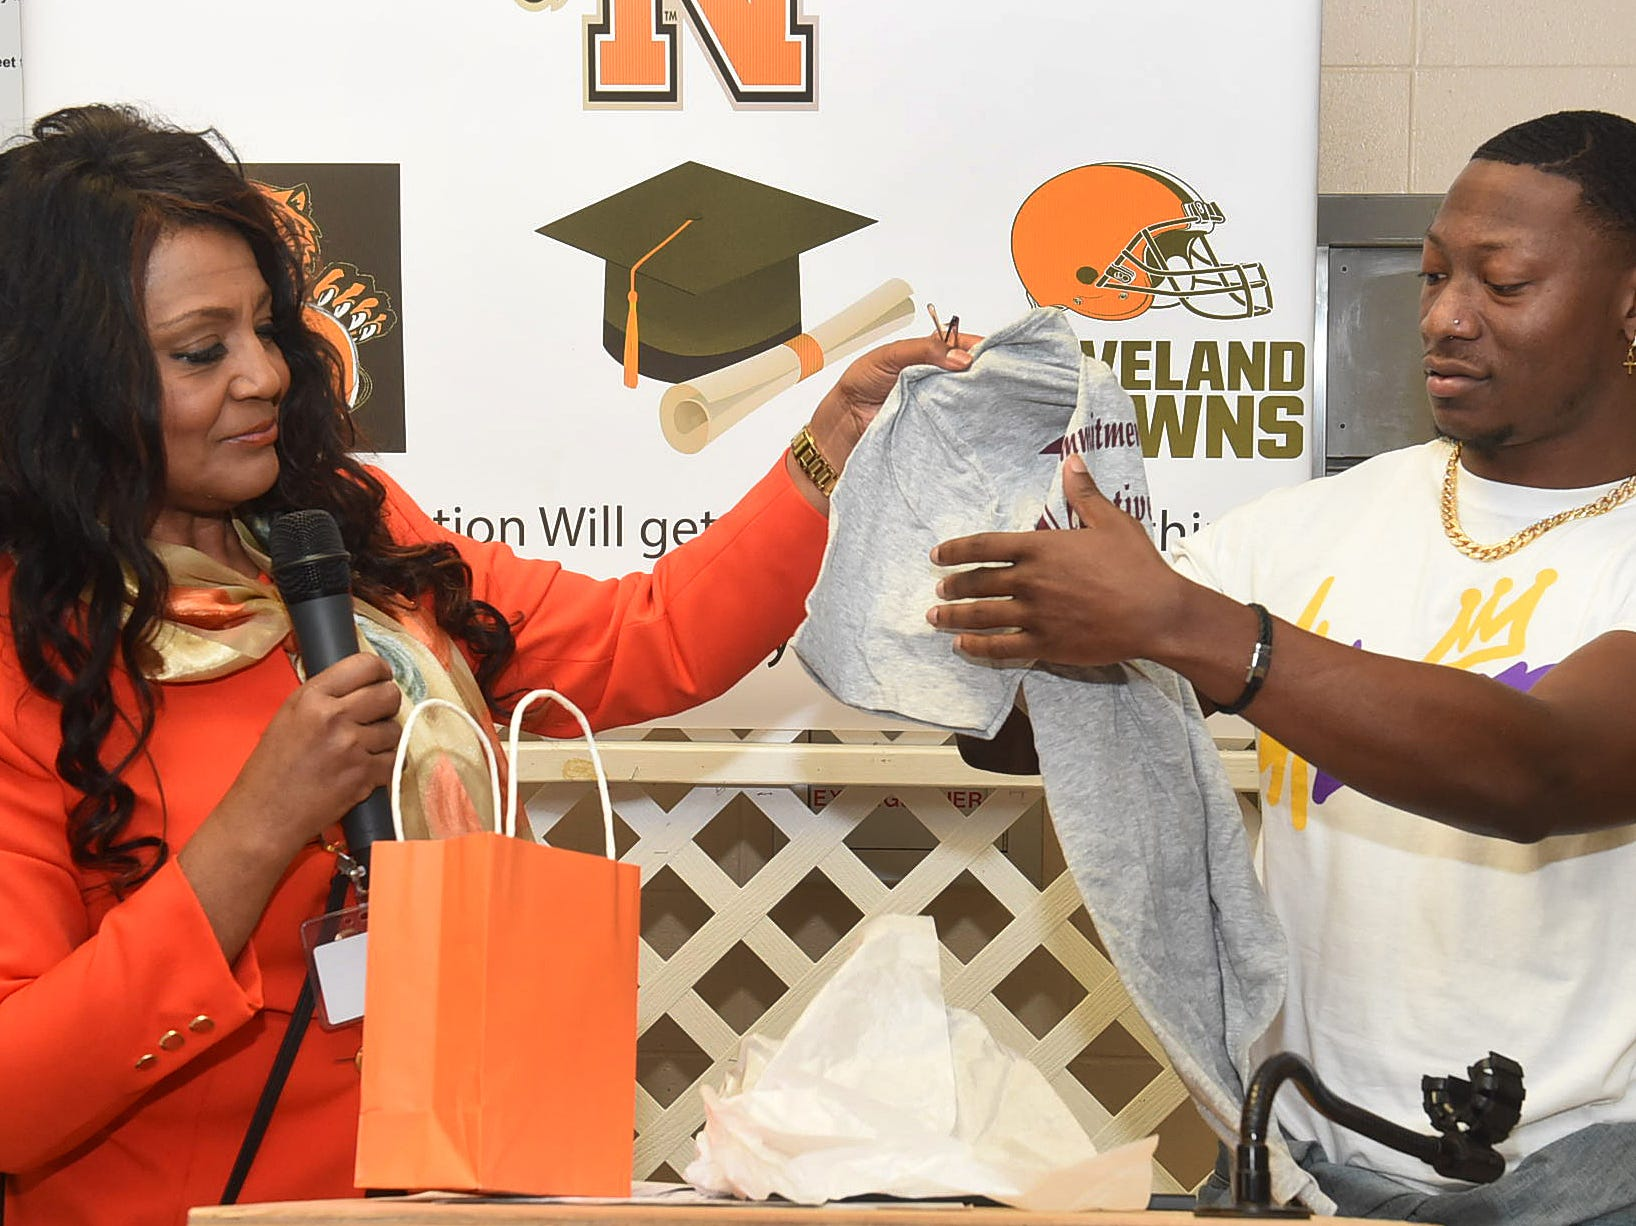 An outstanding football player at Opelousas High School, Boutte is now a member of the NFL Cleveland Browns.